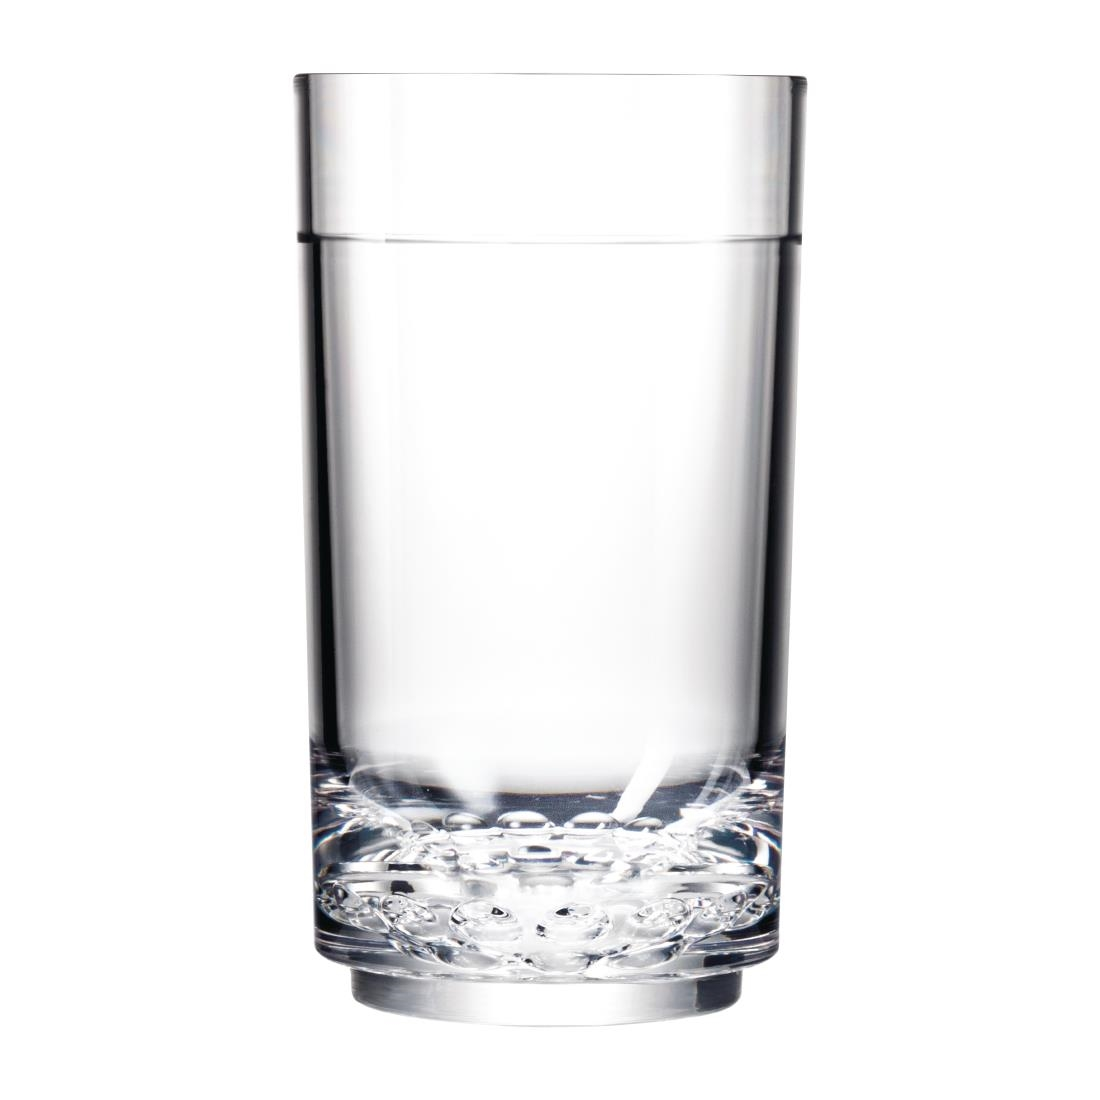 Image of Drinique Elite Tritan Hi Ball Tumblers Clear 400ml (Pack of 24) Pack of 24